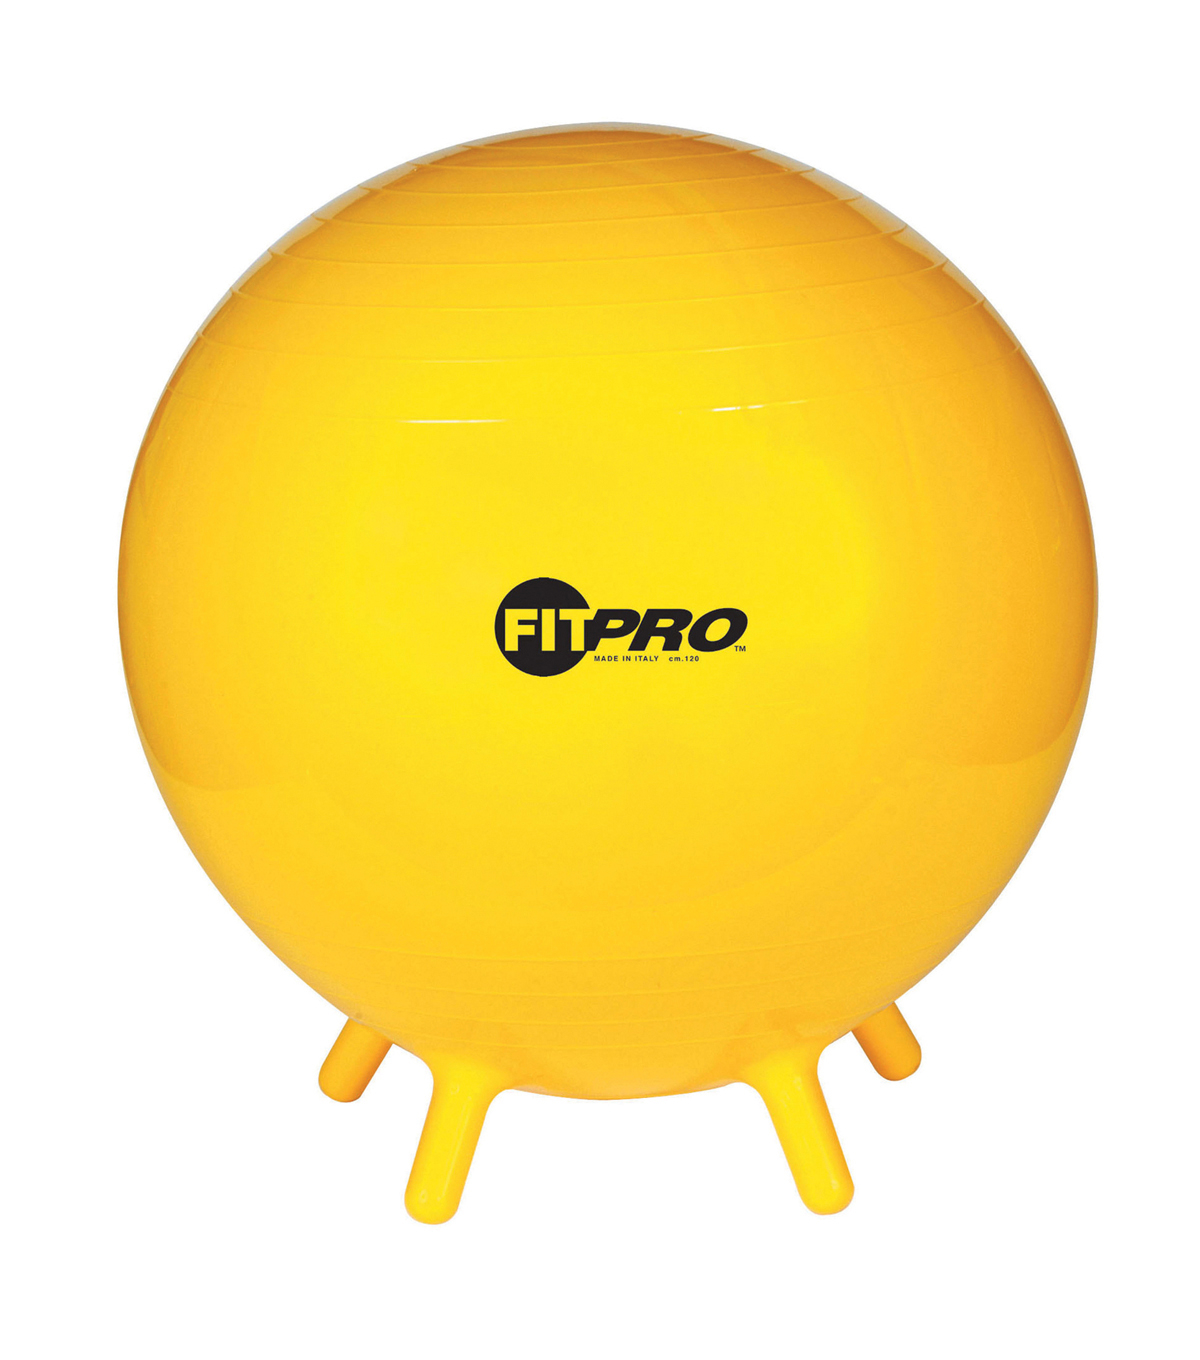 FitPro Ball with Stability Legs, 65cm